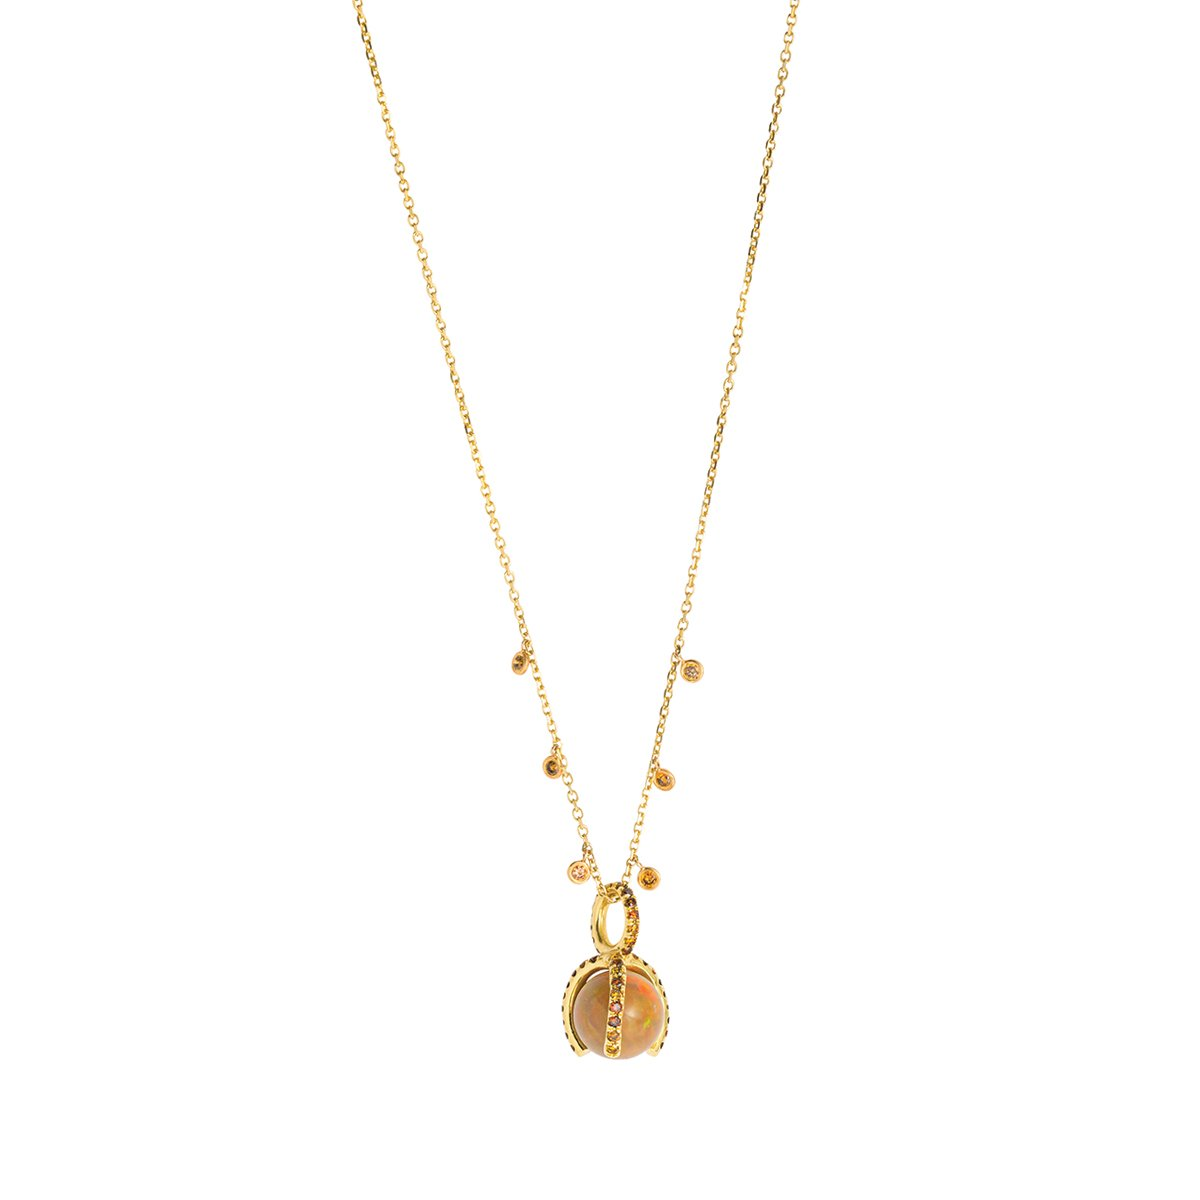 keys wid atlas in fit collections id hei rose fmt gold key diamonds ed tiffany with constrain pendant